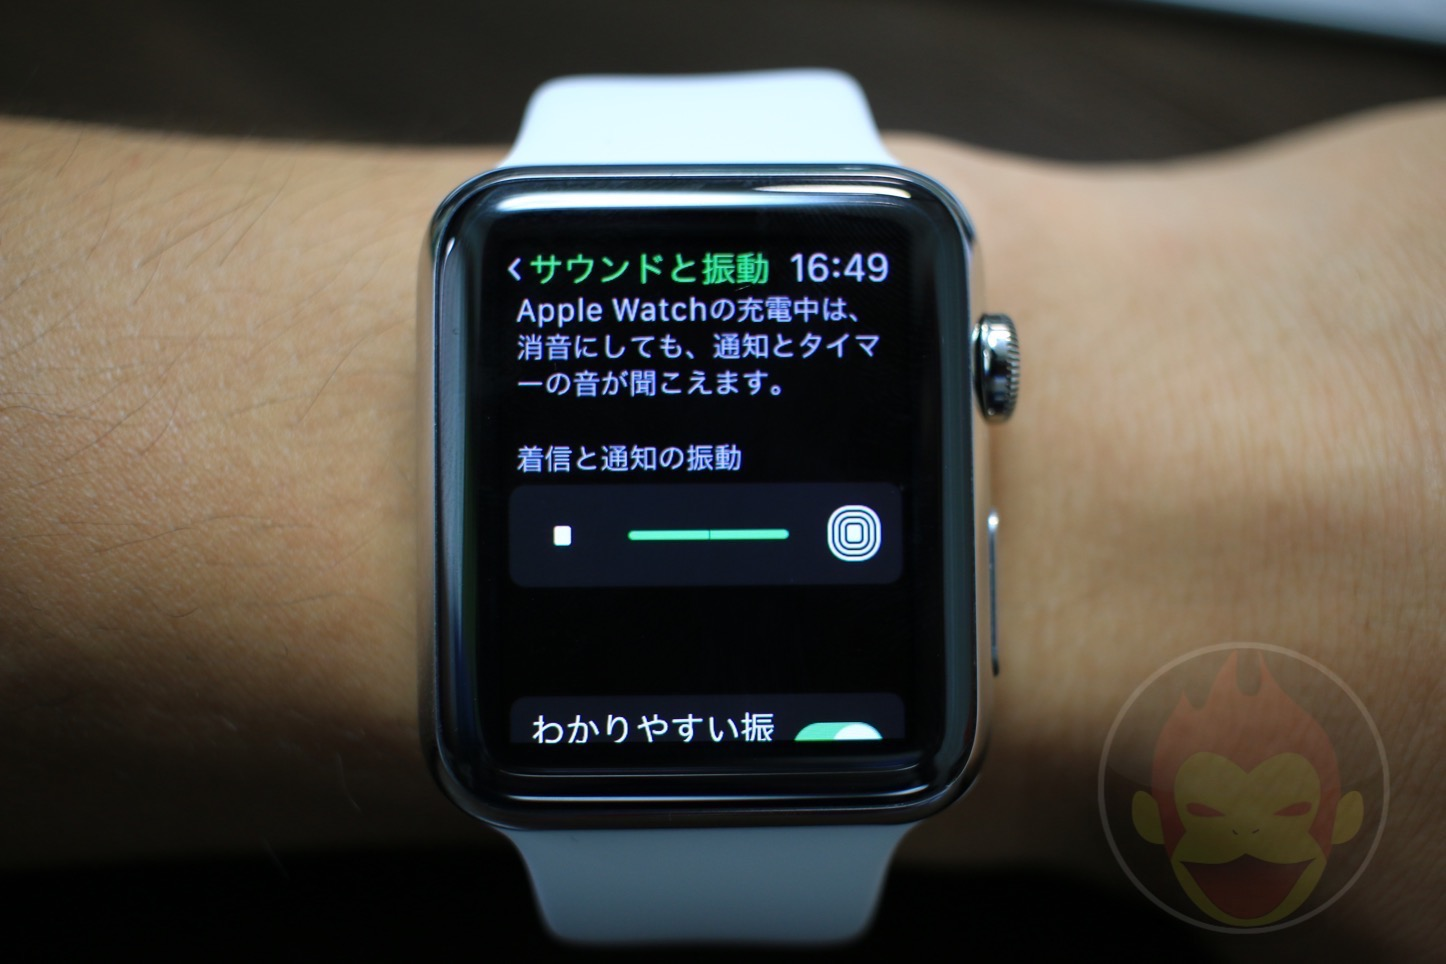 Apple-Watch-Getting-Most-Out-Of-Battery-01.JPG